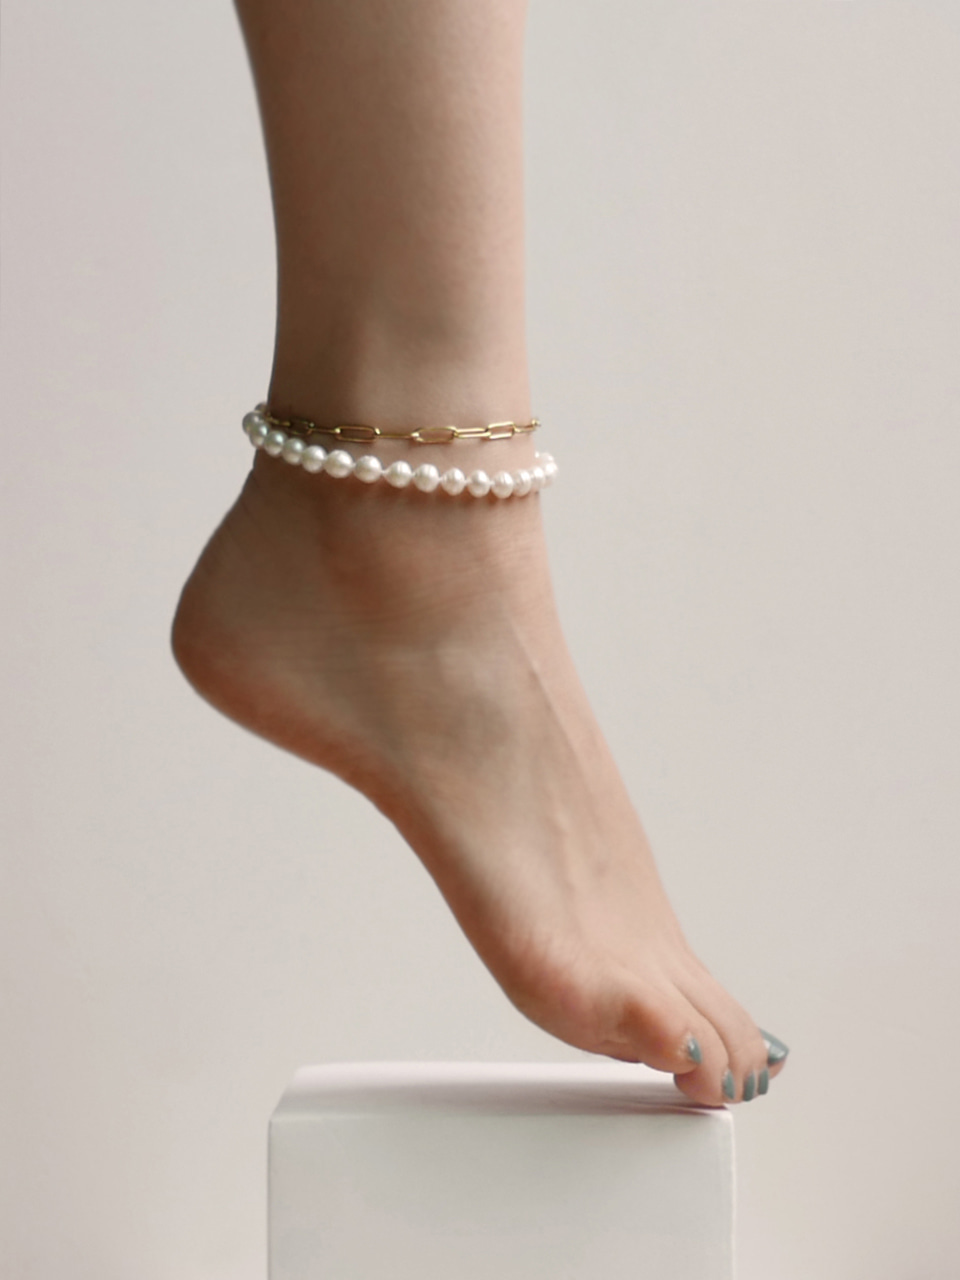 Pearls chain anklet 진주 체인 발찌